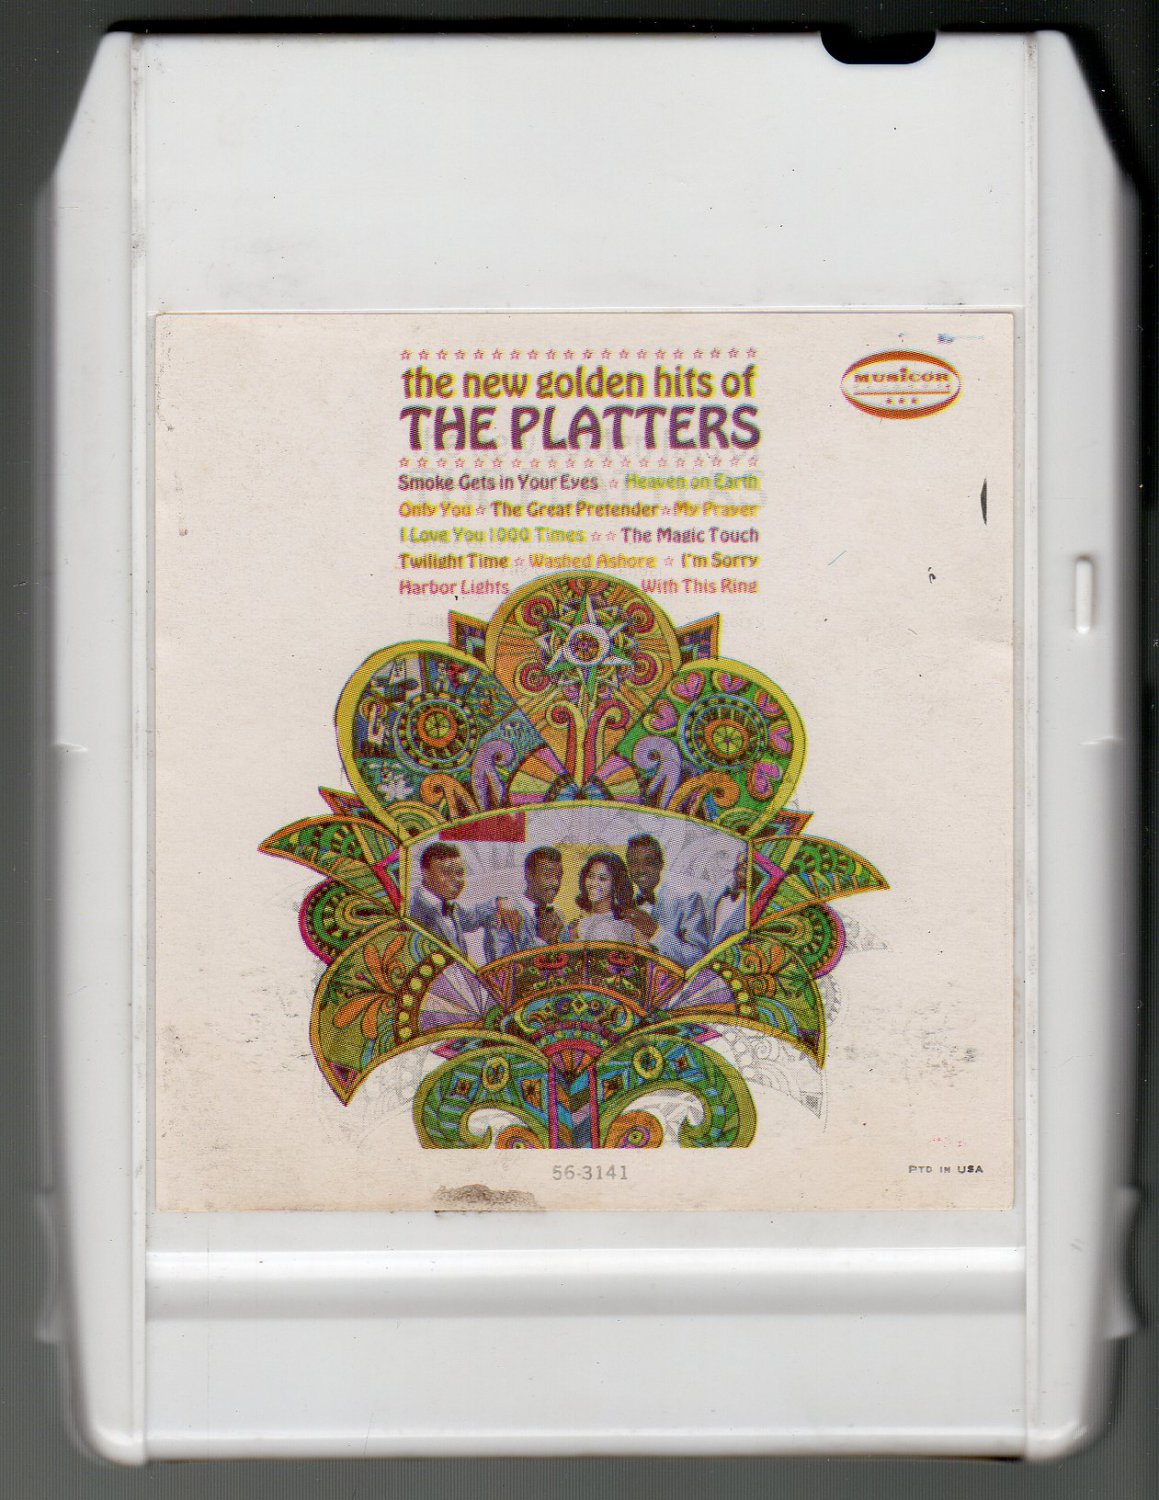 The Platters - New Golden Hits Of 1967 MUSICOR ITCC A50 8-track tape